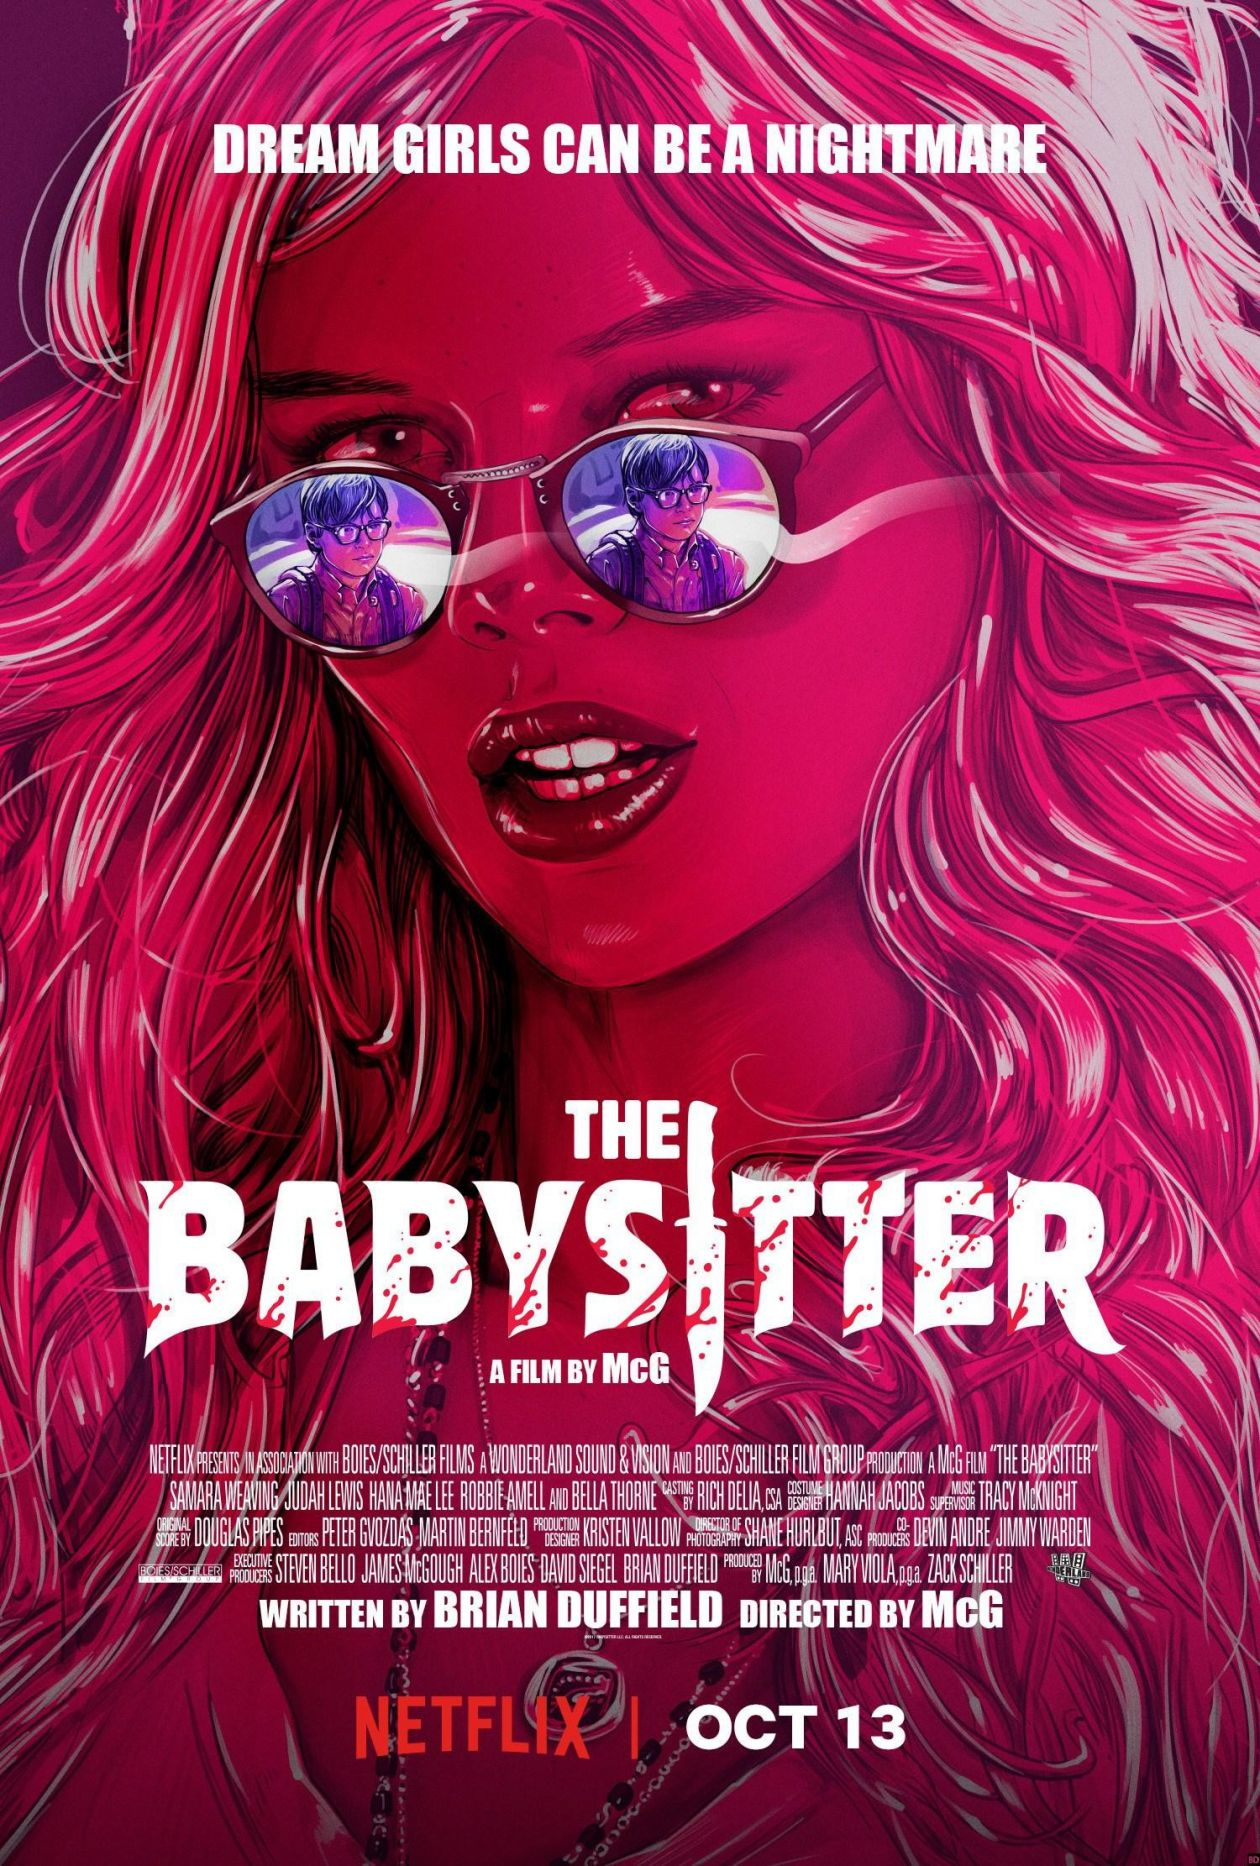 Samara Weaving Australian actress | The Babysitter : Bee | McG / Netflix 2017 / MOVIE POSTER